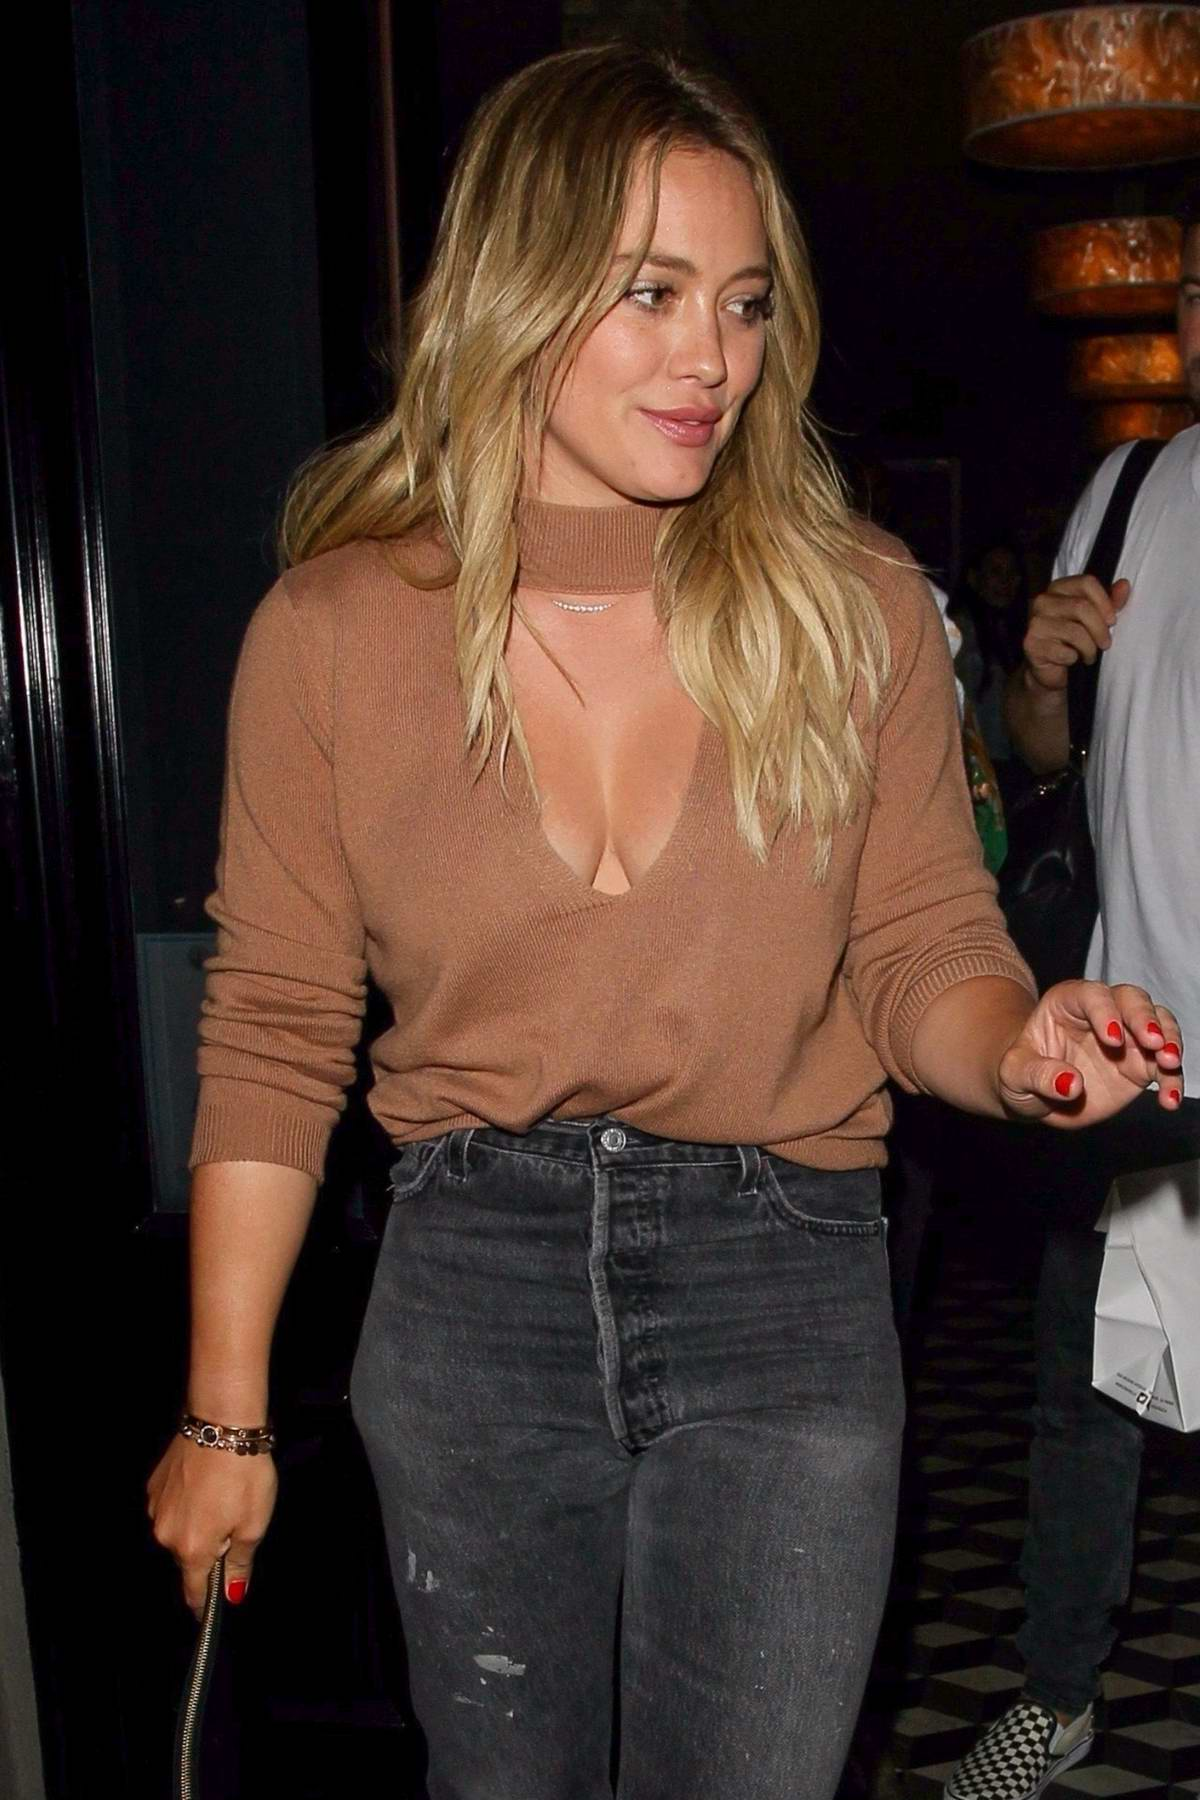 Hilary Duff leaving after dinner at Craigs in West Hollywood, California